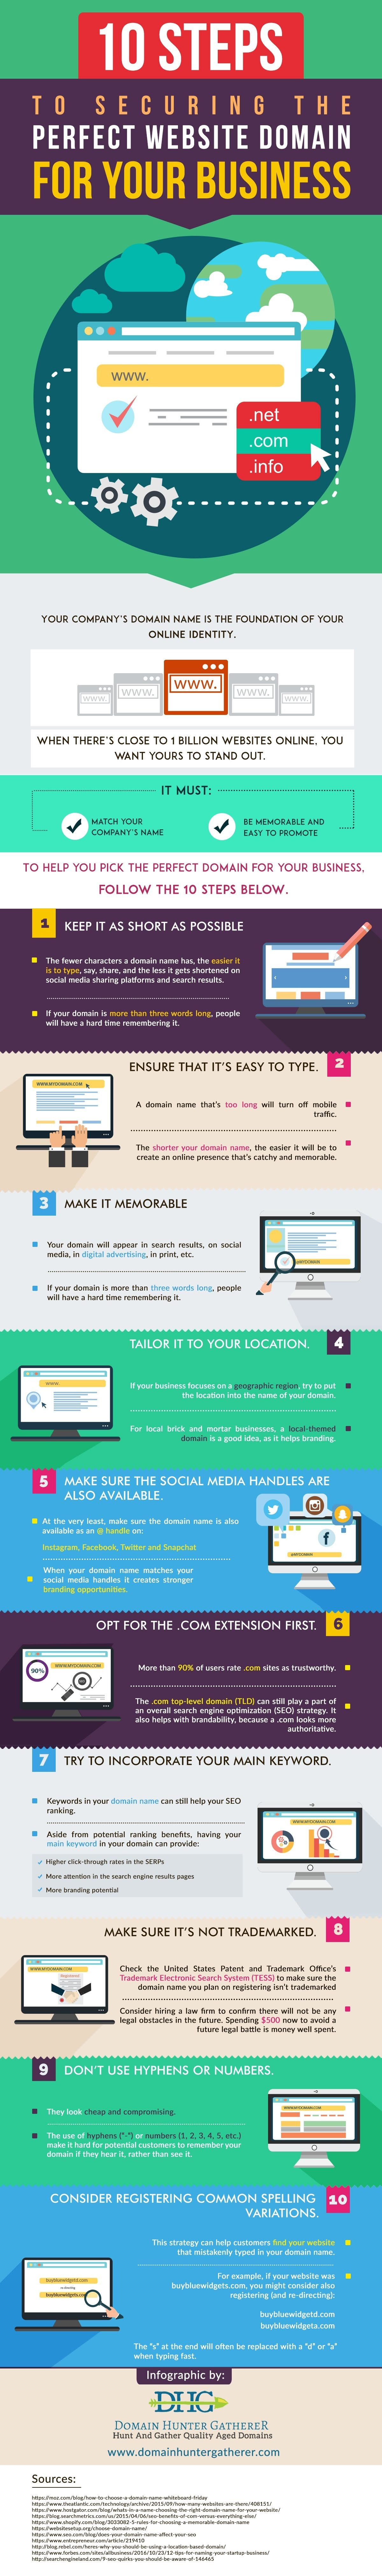 The 10-Step Method to Getting the Best Domain Name for Your Business [Infographic] | Social Media Today